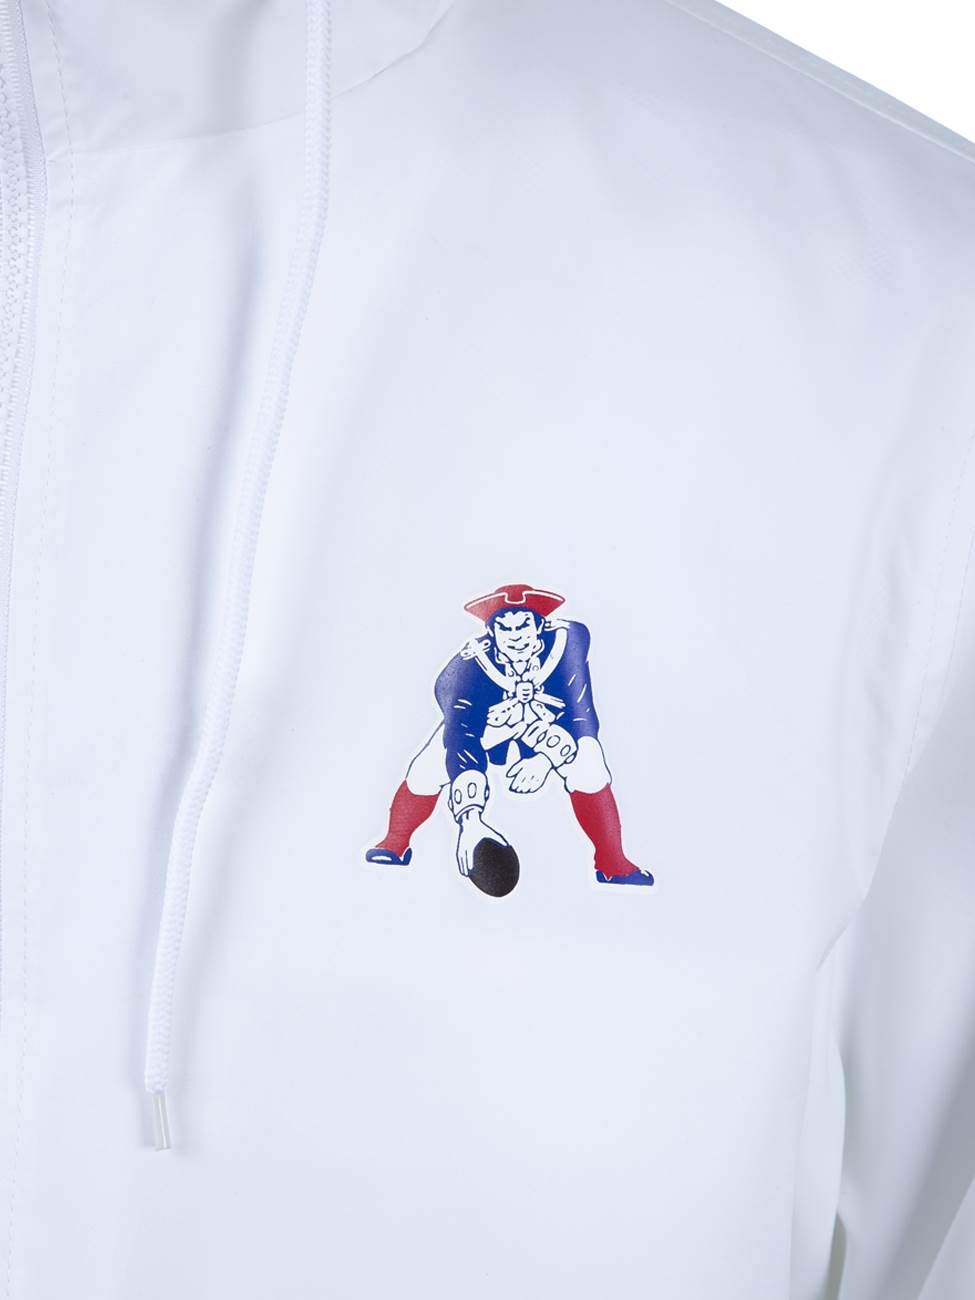 0e08508bfe98b JAQUETA WINDBREAK NEW ENGLAND PATRIOTS NFL NEW ERA  Amazon.com.br  Amazon  Moda